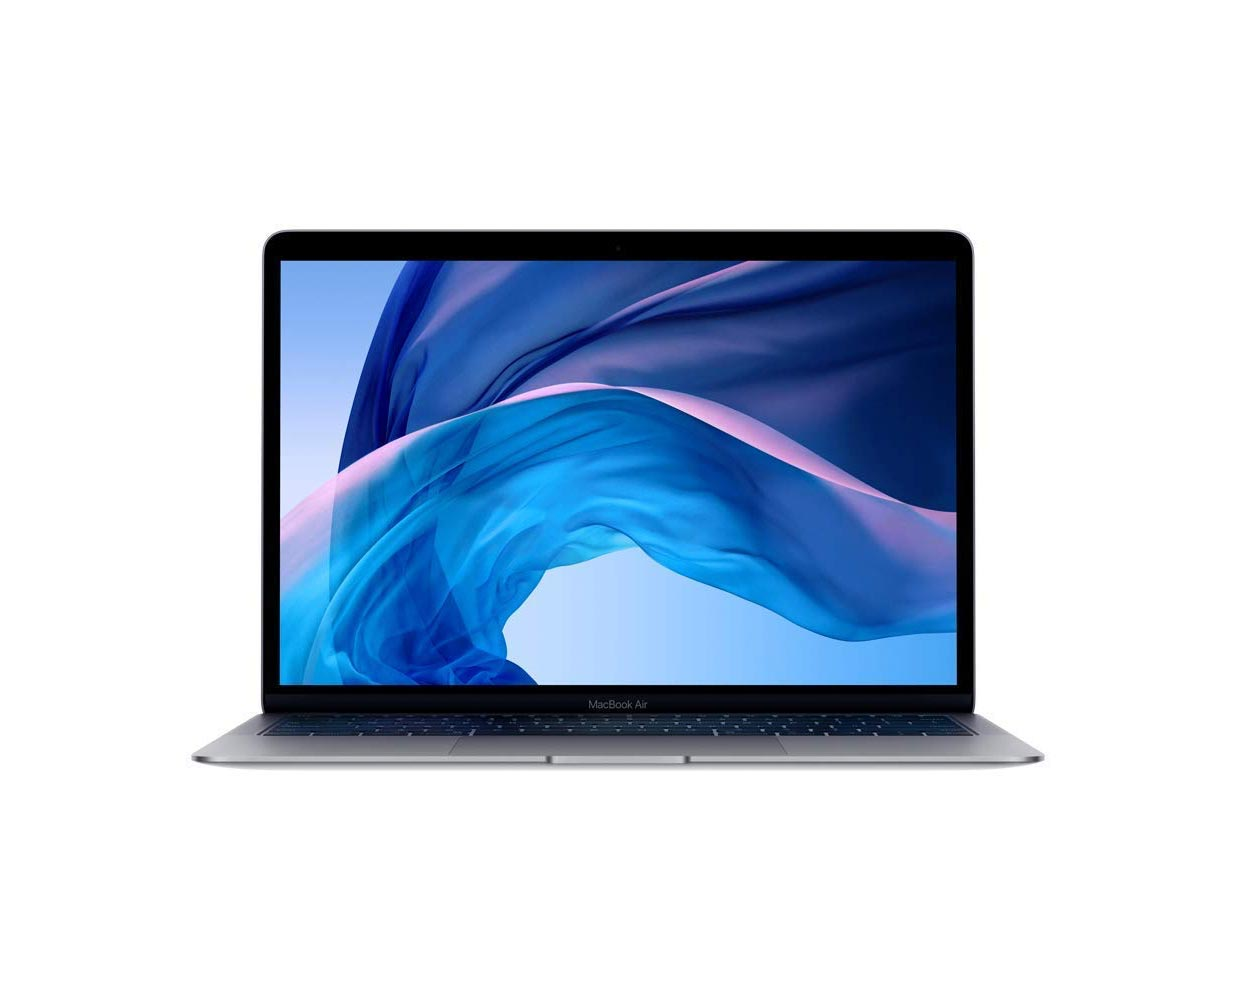 Ноутбуки: Macbook Air 13 2018 256GB Space Gray, фотография №1